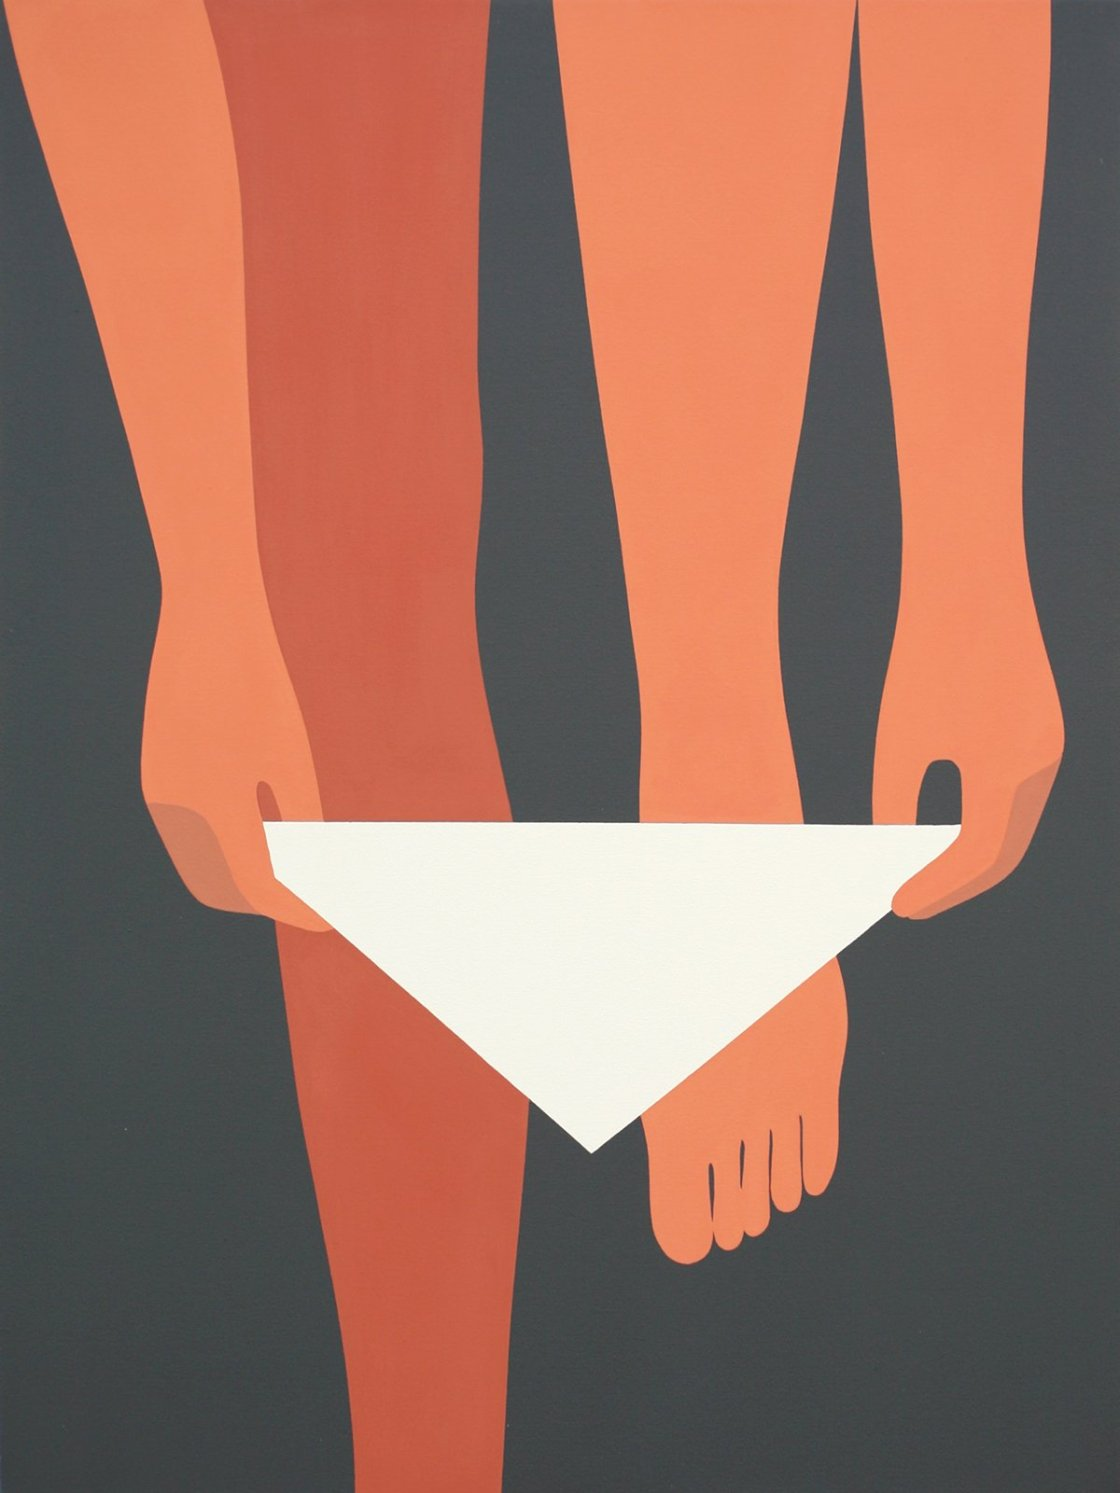 geoff_mcfetridge_paintings-designplayground_15